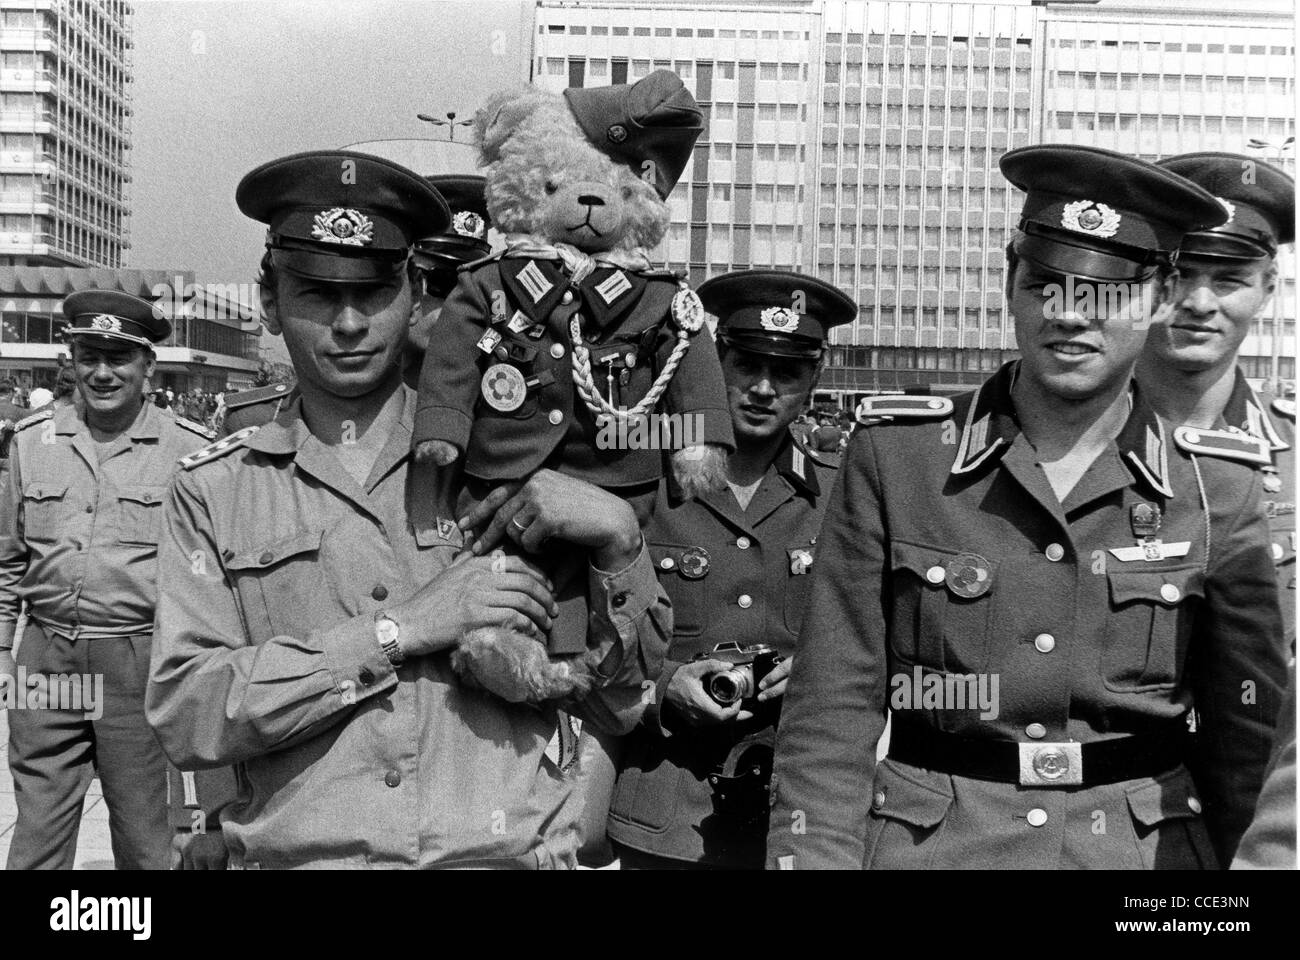 Soldiers of the National People's Army with a teddy bear in uniform in East Berlin. - Stock Image